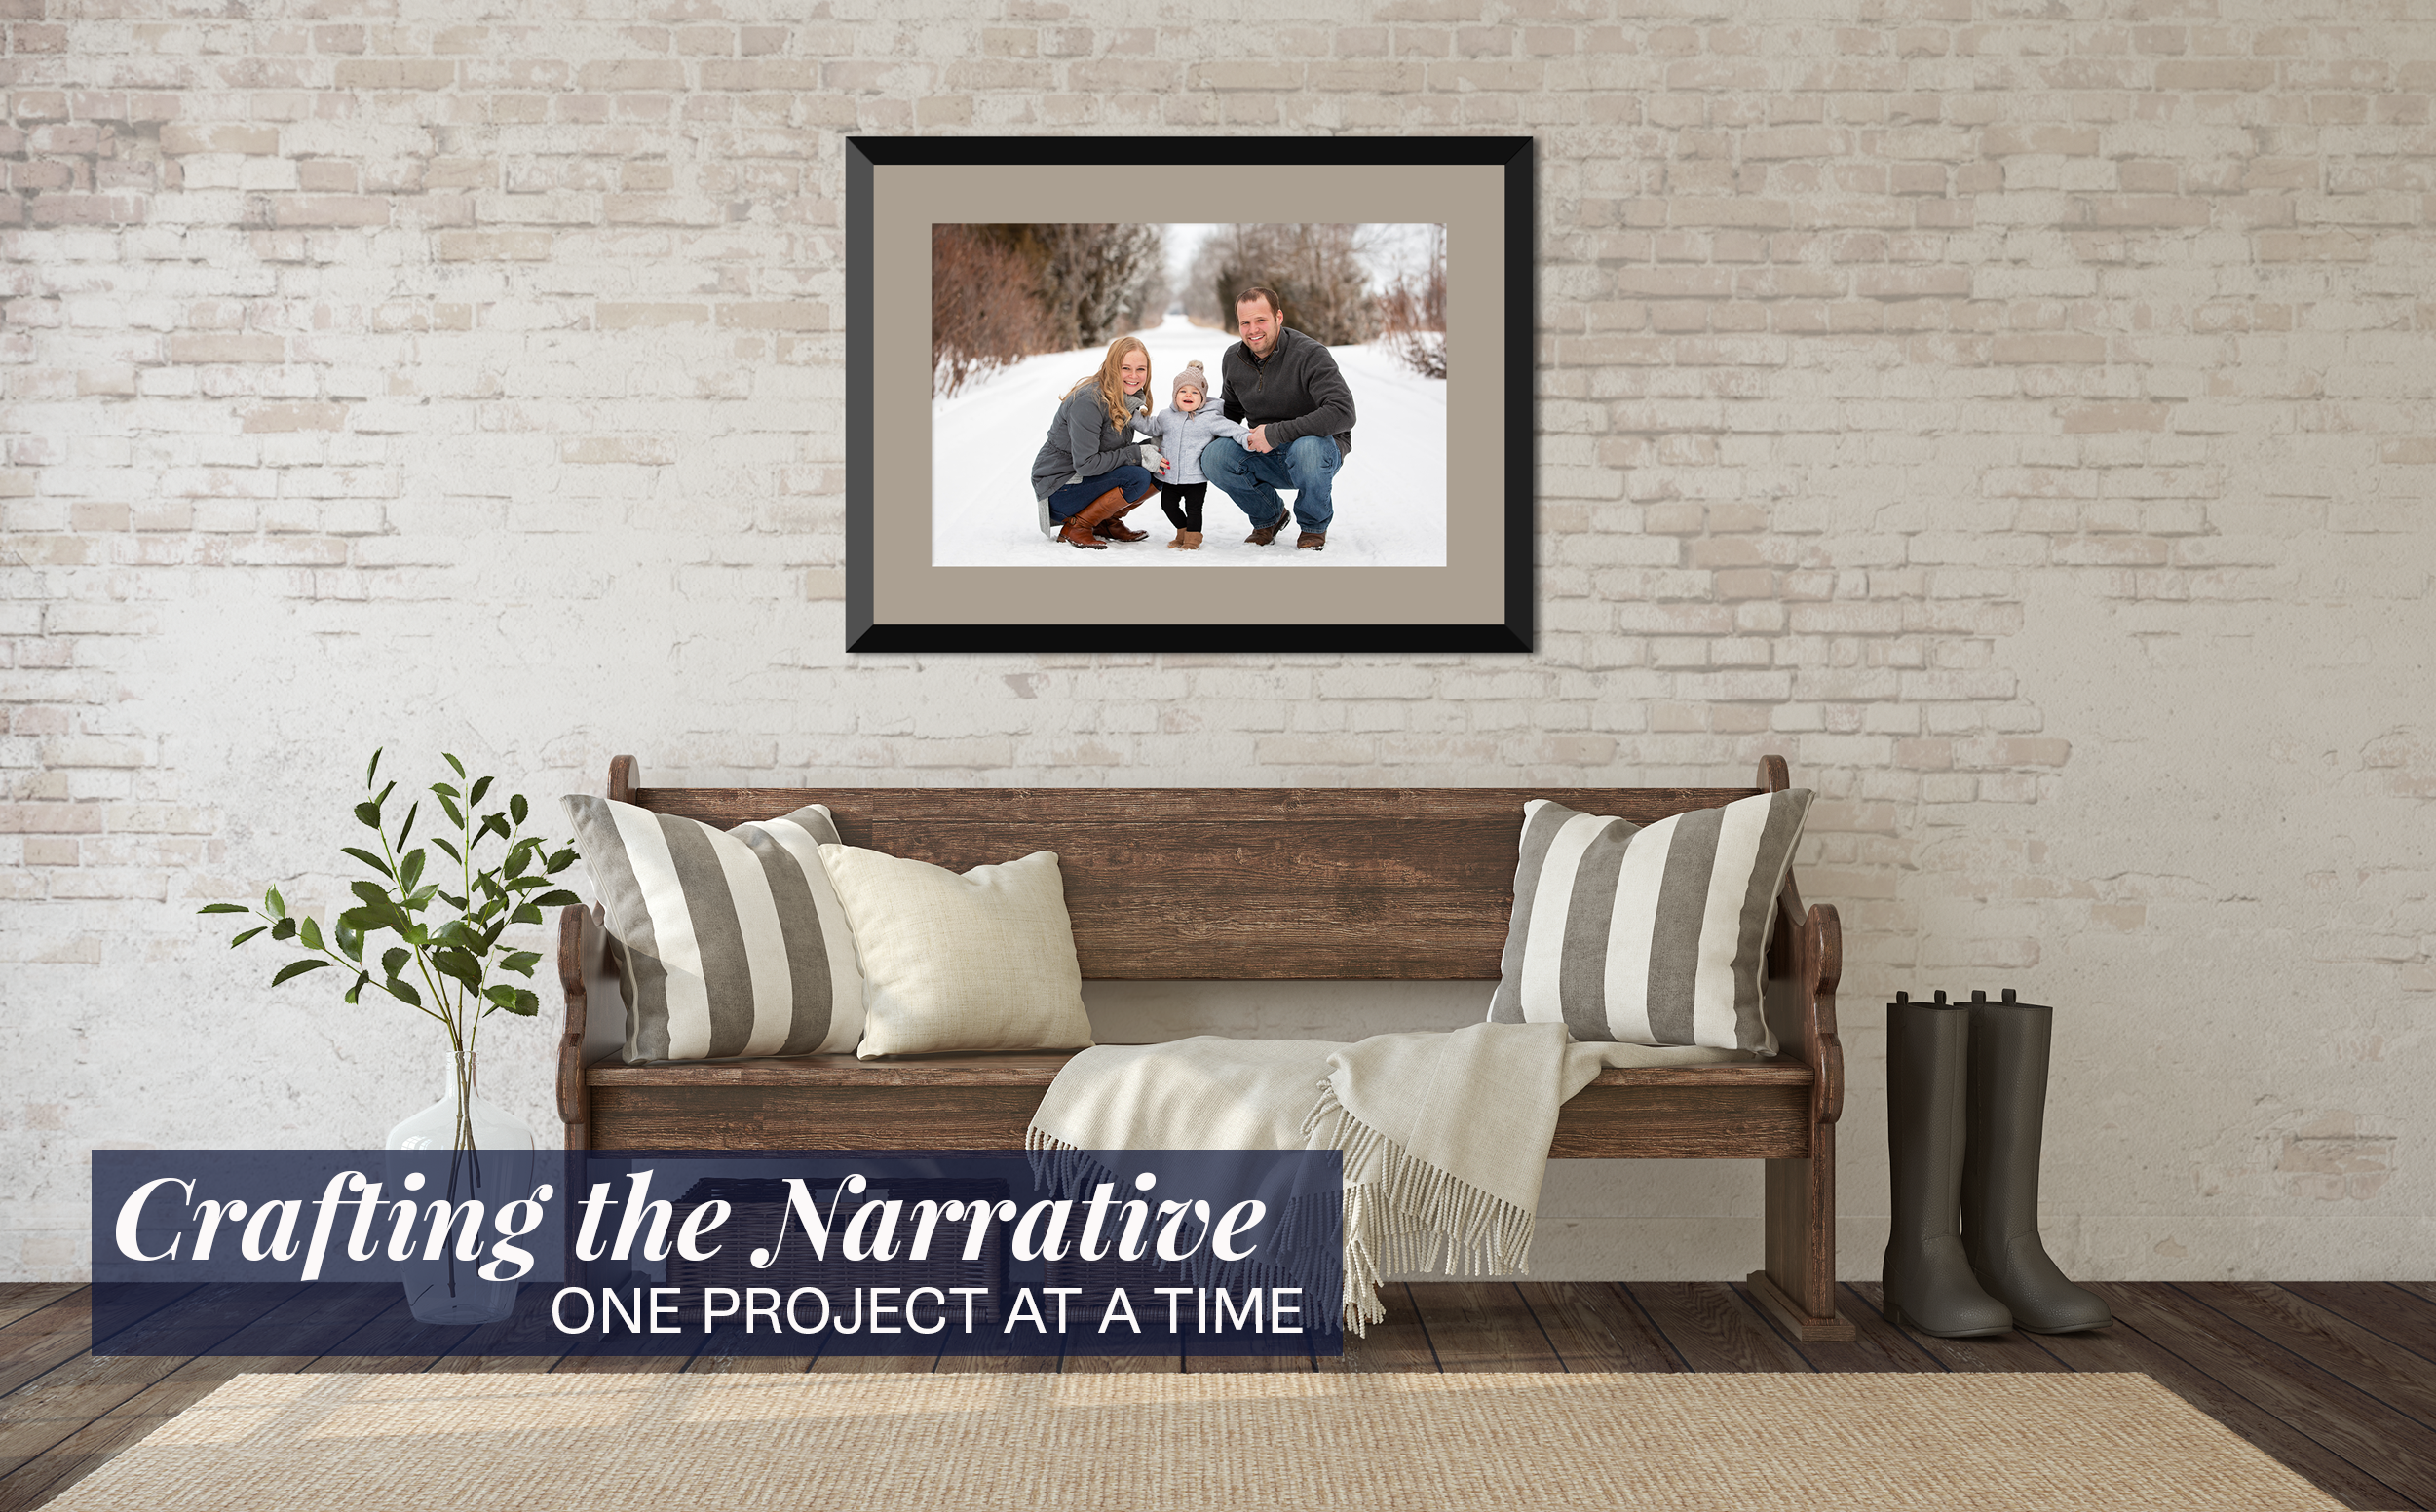 A brick entryway with a styled wooden bench. On the left is a plant, to the right sits a pair of rain boots. The focus of the image is a family photo of a young couple and their toddler in a winter setting.